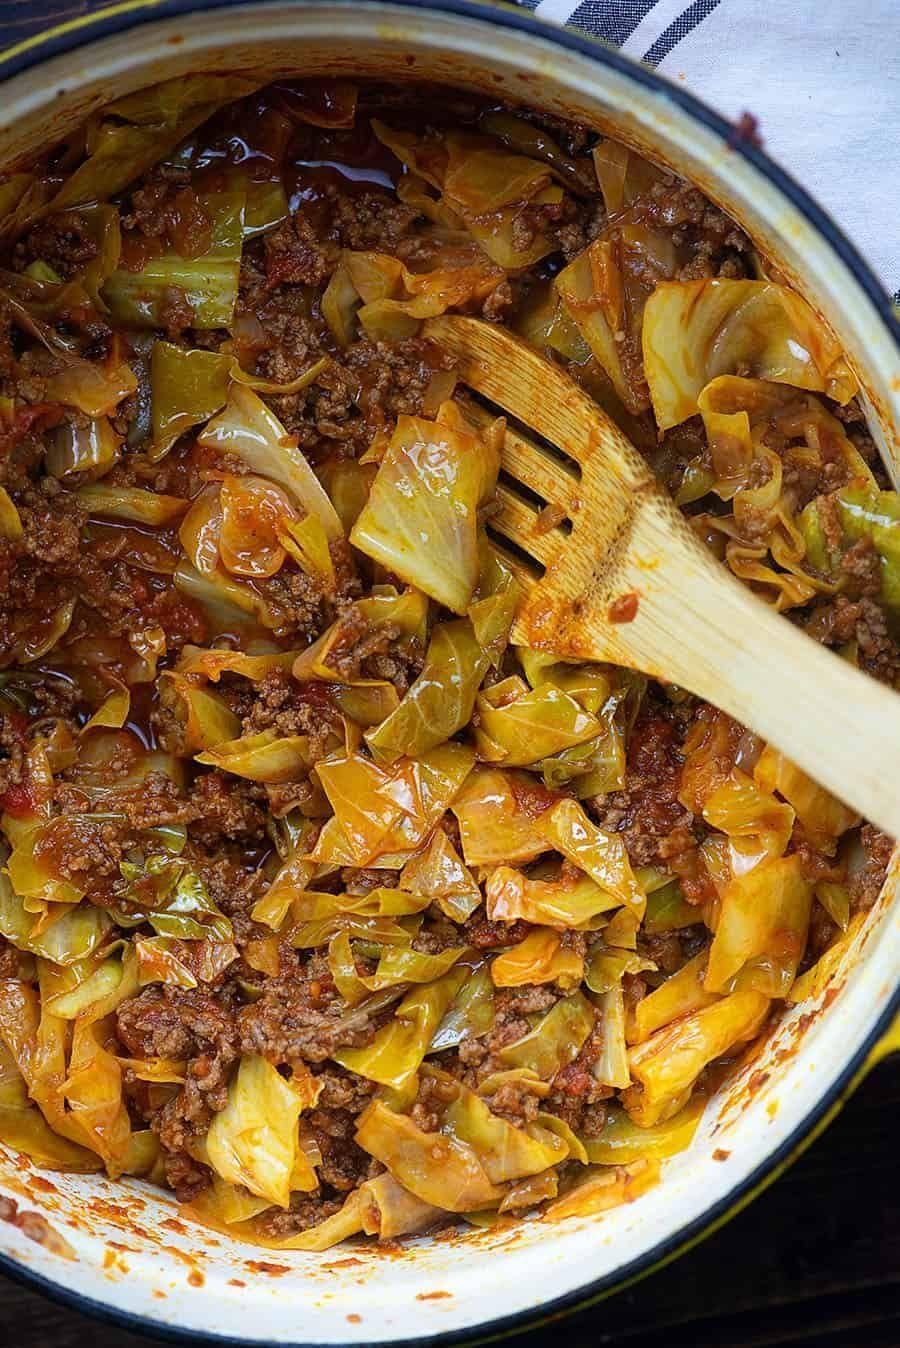 """<p>Like your favorite cabbage dish without all the fuss.</p><p>Get the recipe from <a href=""""https://thatlowcarblife.com/unstuffed-cabbage-rolls/"""" rel=""""nofollow noopener"""" target=""""_blank"""" data-ylk=""""slk:That Low Carb Life"""" class=""""link rapid-noclick-resp"""">That Low Carb Life</a>.</p>"""